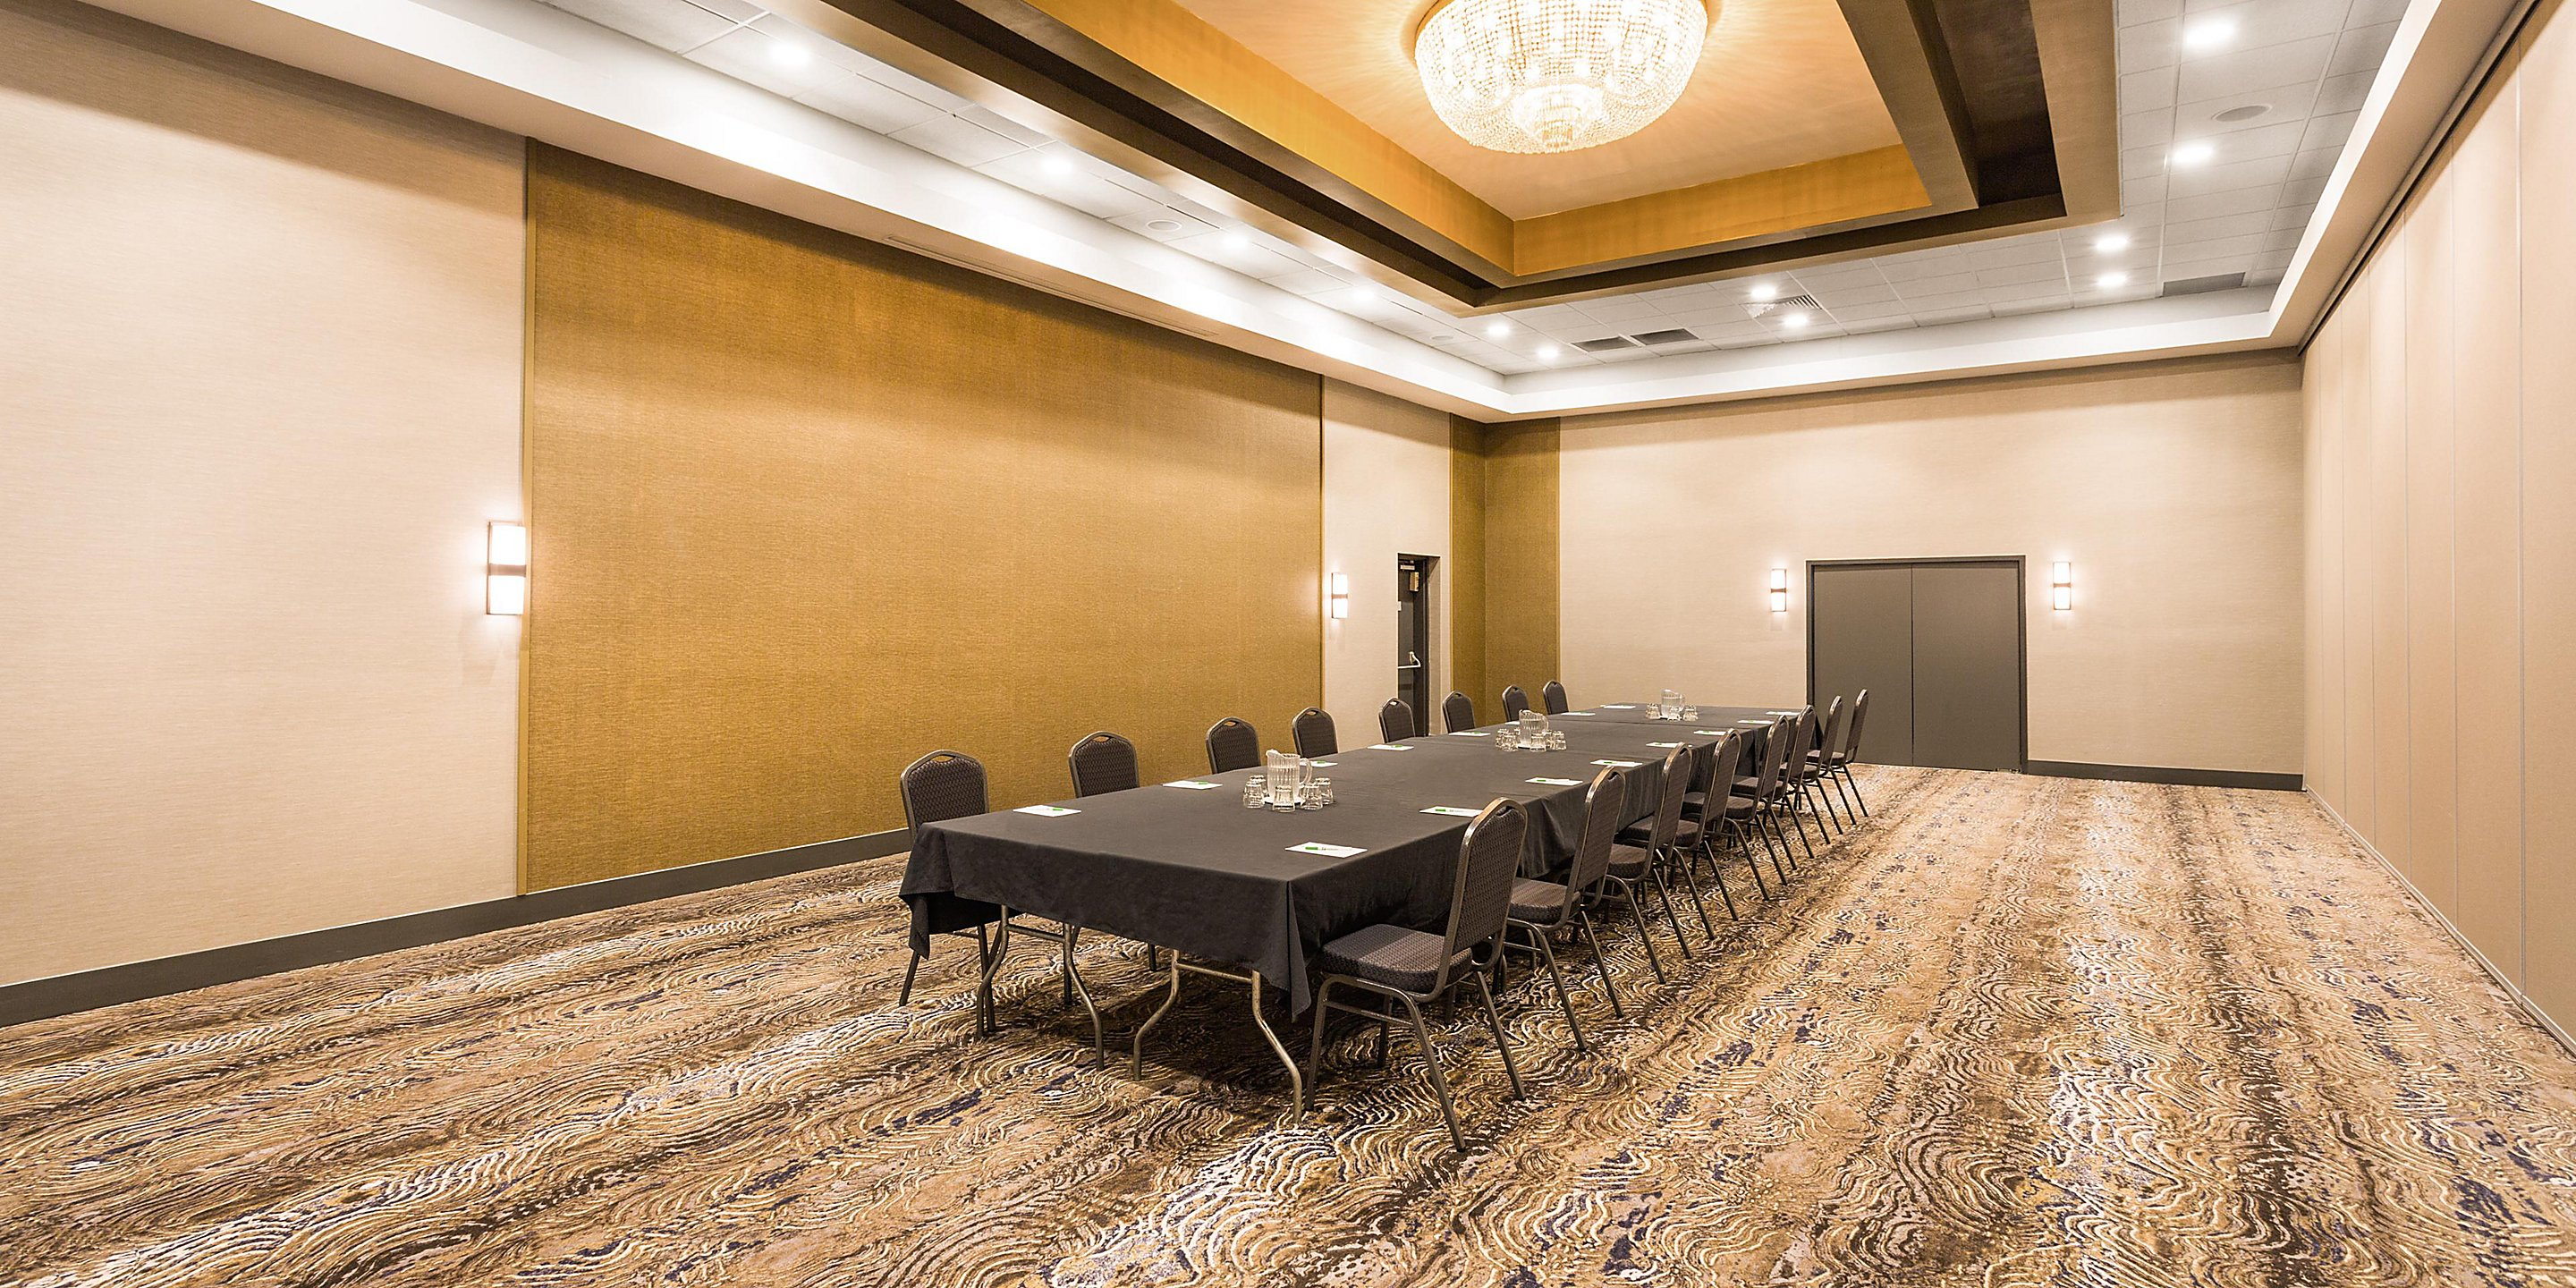 https://www.hotelsbyday.com/_data/default-hotel_image/4/21723/holiday-inn-roanoke-board-room.jpg